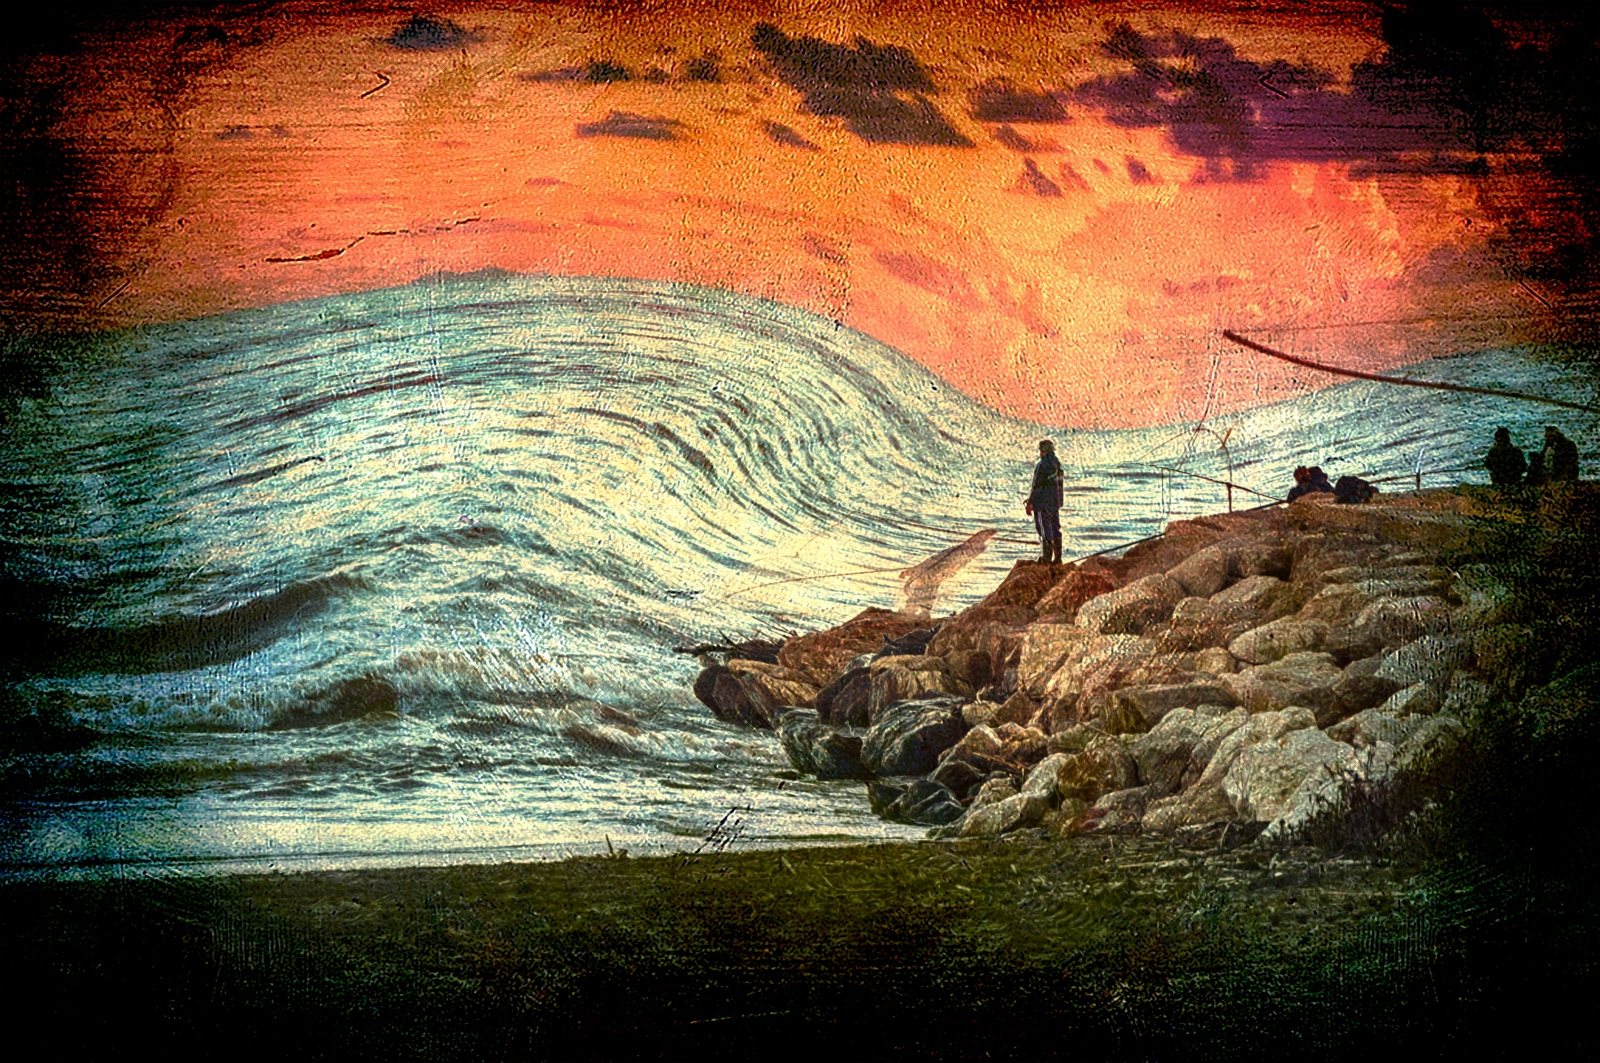 Fishing in a stormy sea